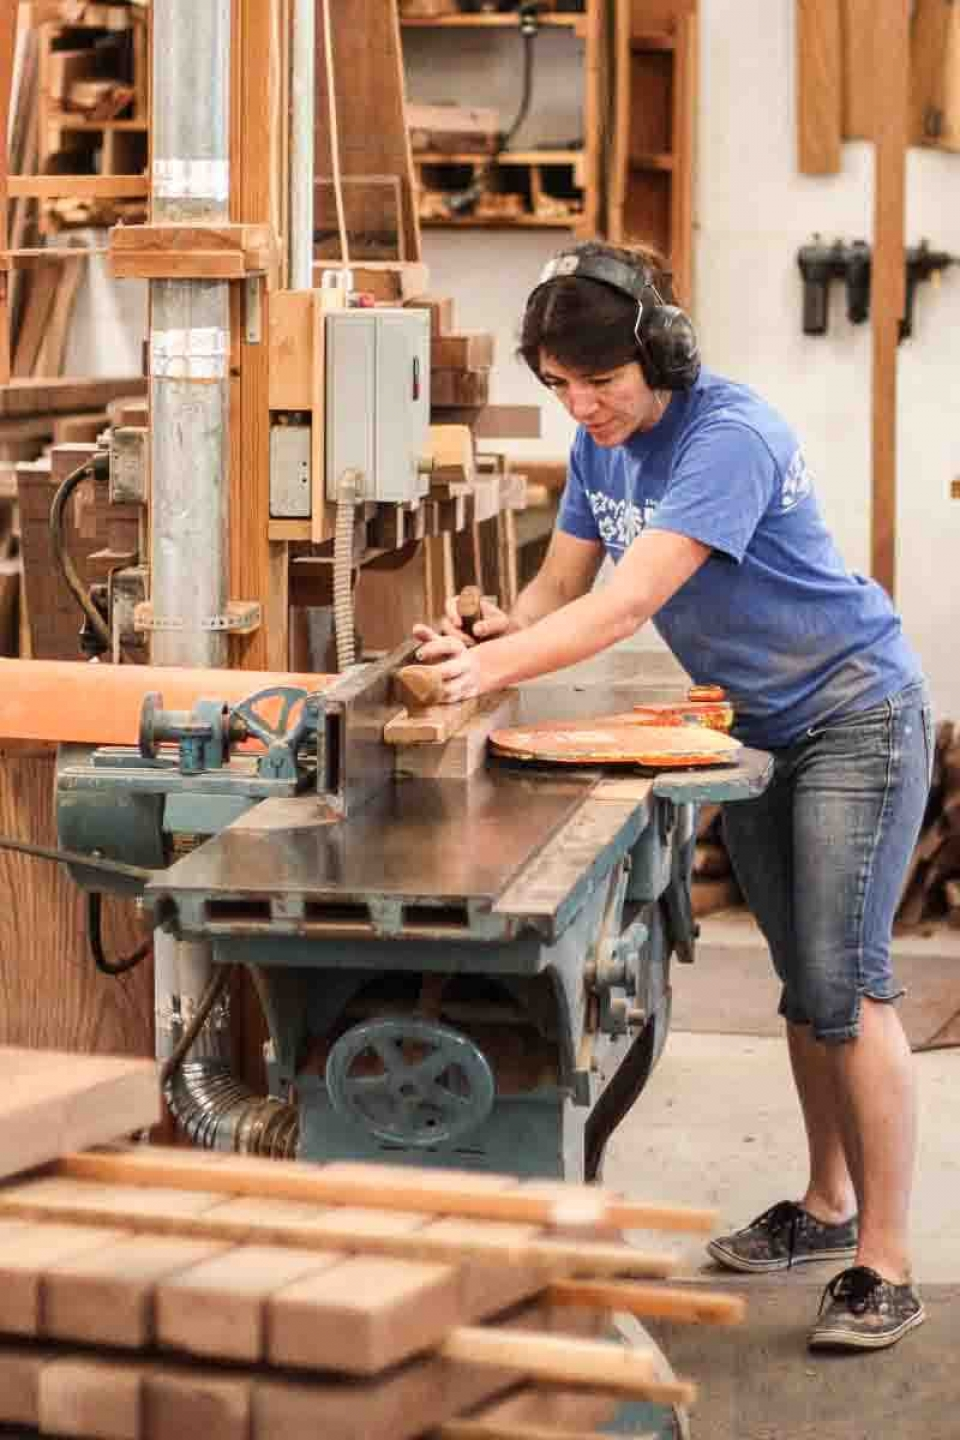 Audra flattening rocking chair seat boards